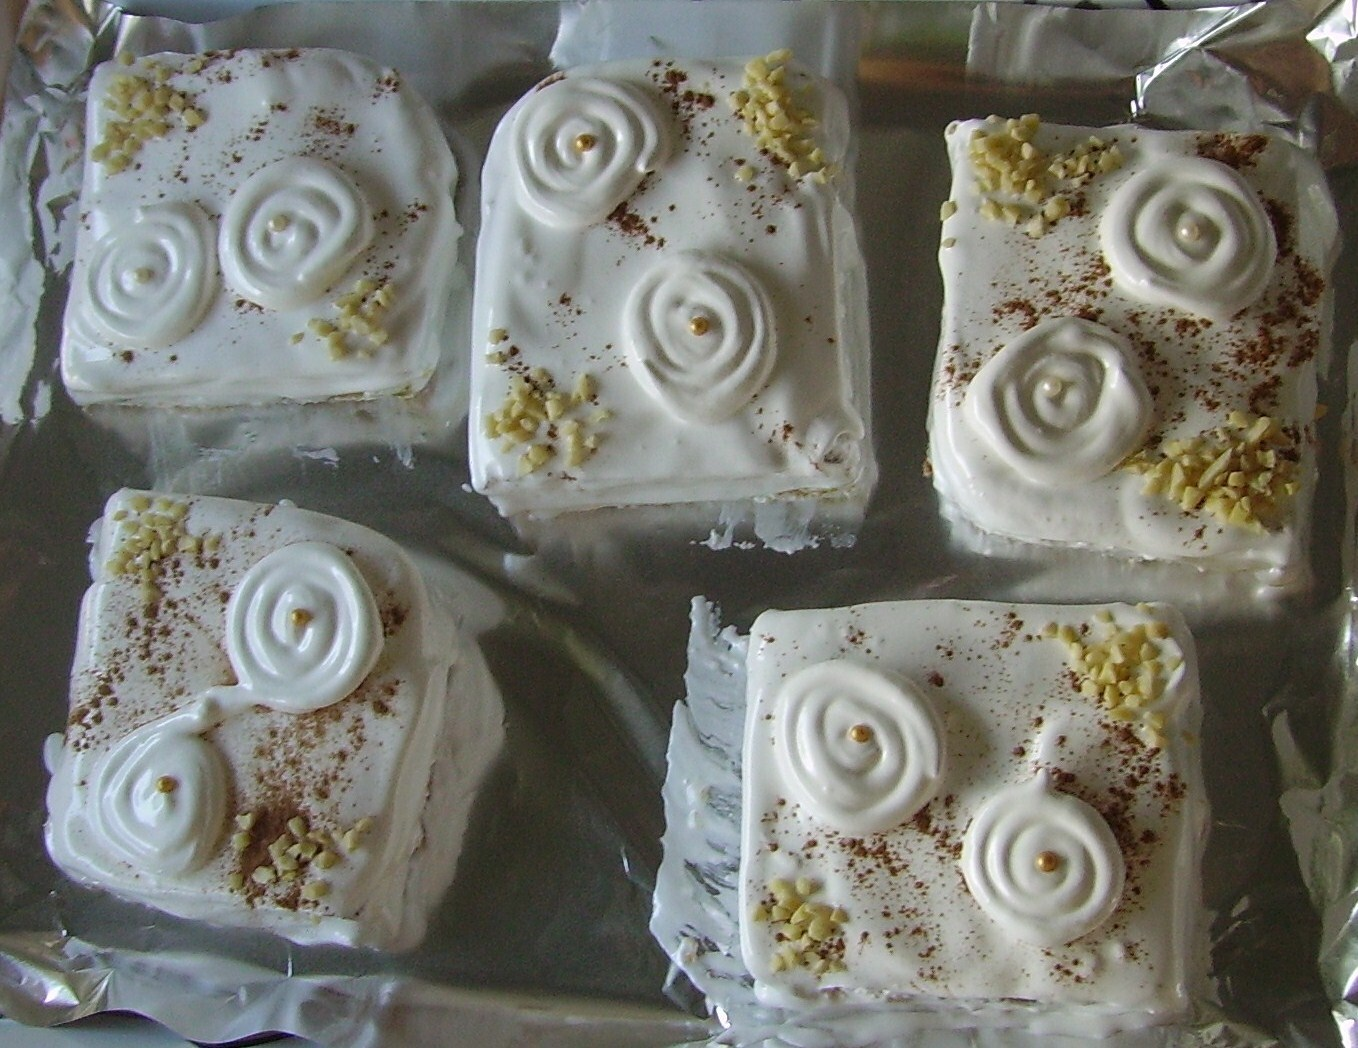 PASTELES DE MERENGUE